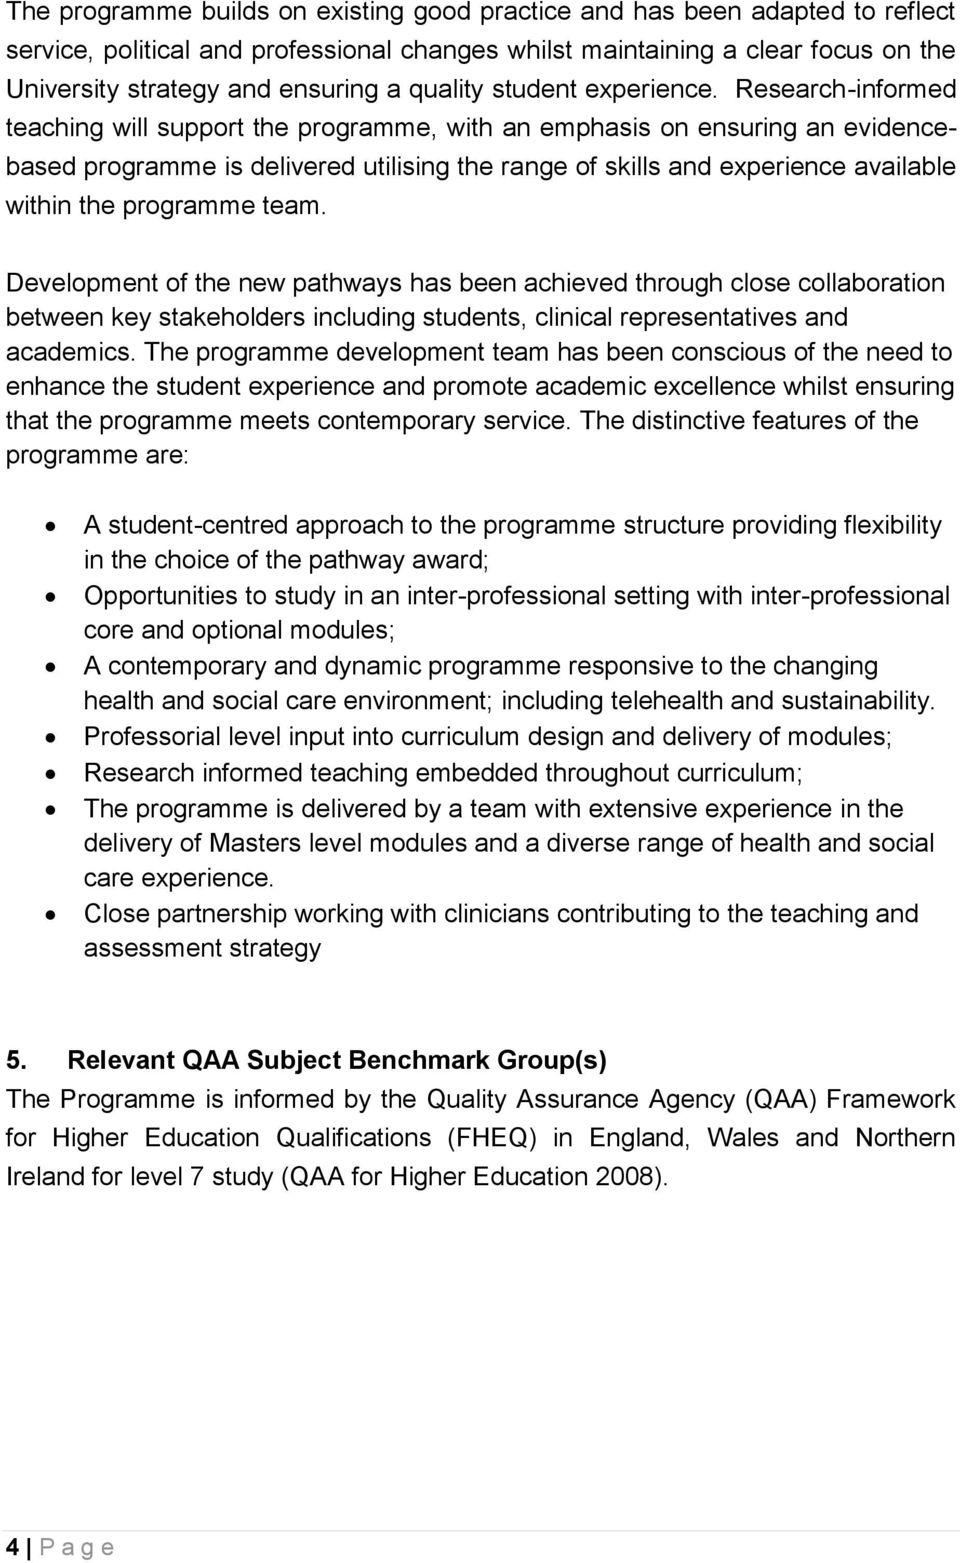 Research-informed teaching will support the programme, with an emphasis on ensuring an evidencebased programme is delivered utilising the range of skills and experience available within the programme